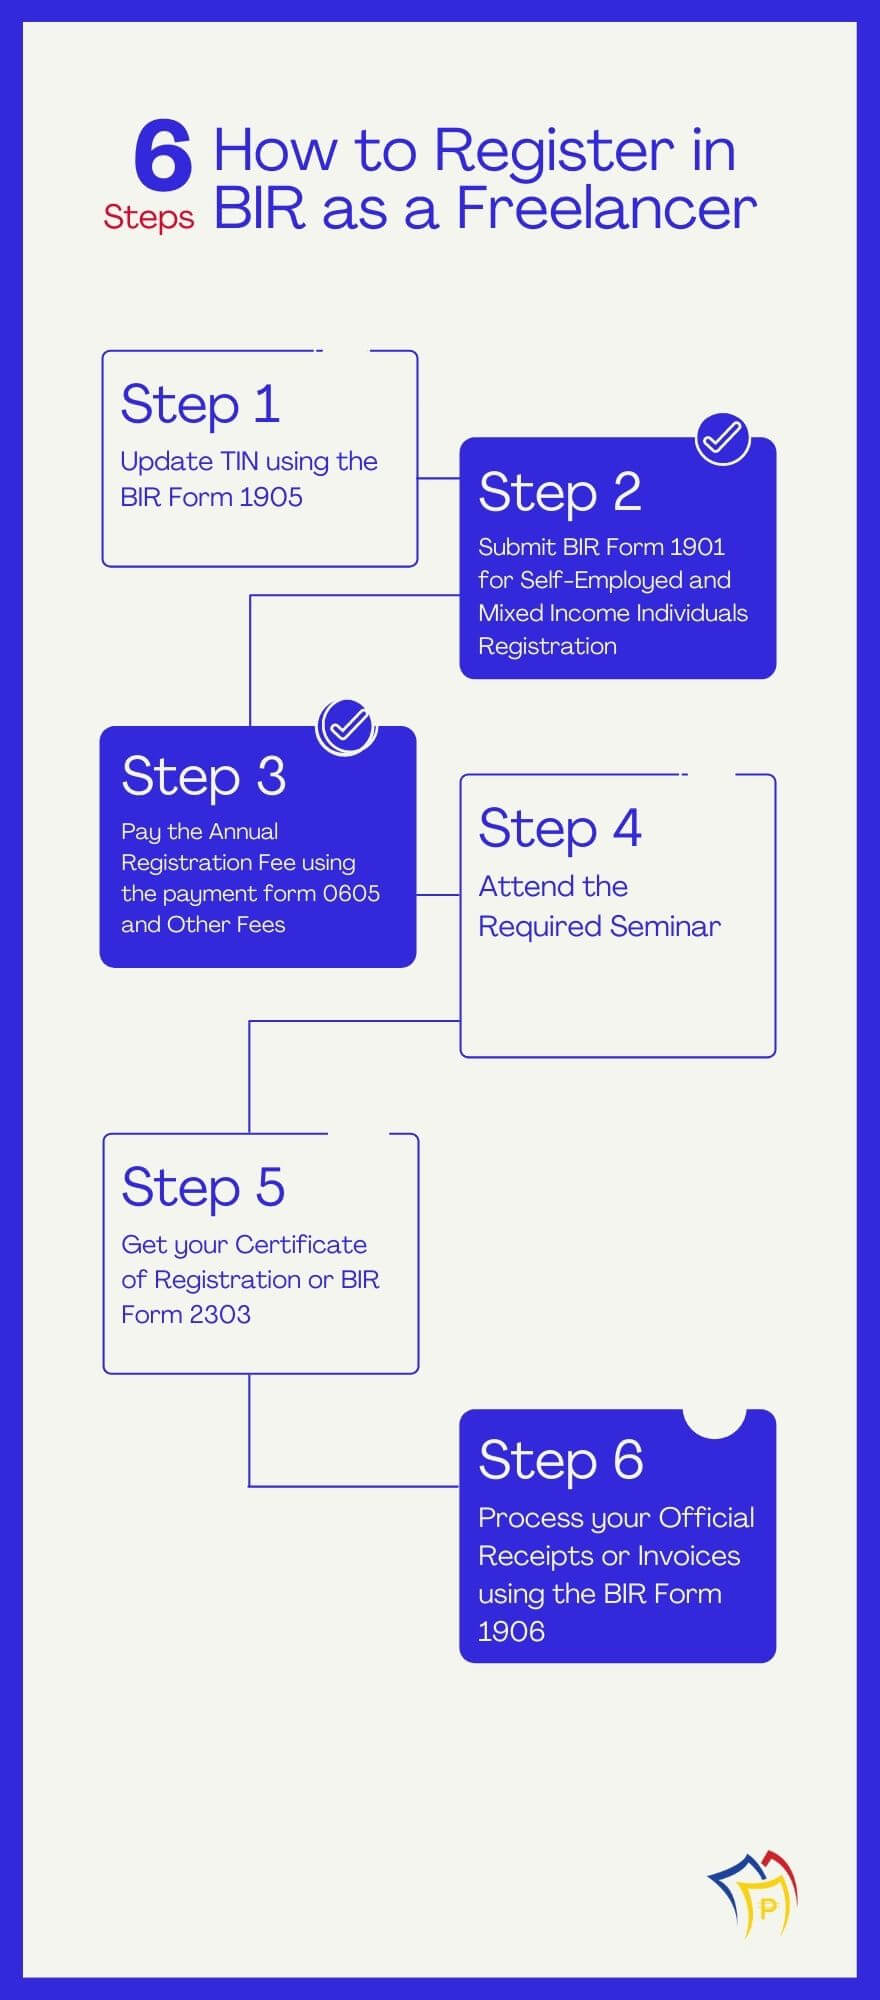 infographic showing steps on how to register as a freelancer with the BIR